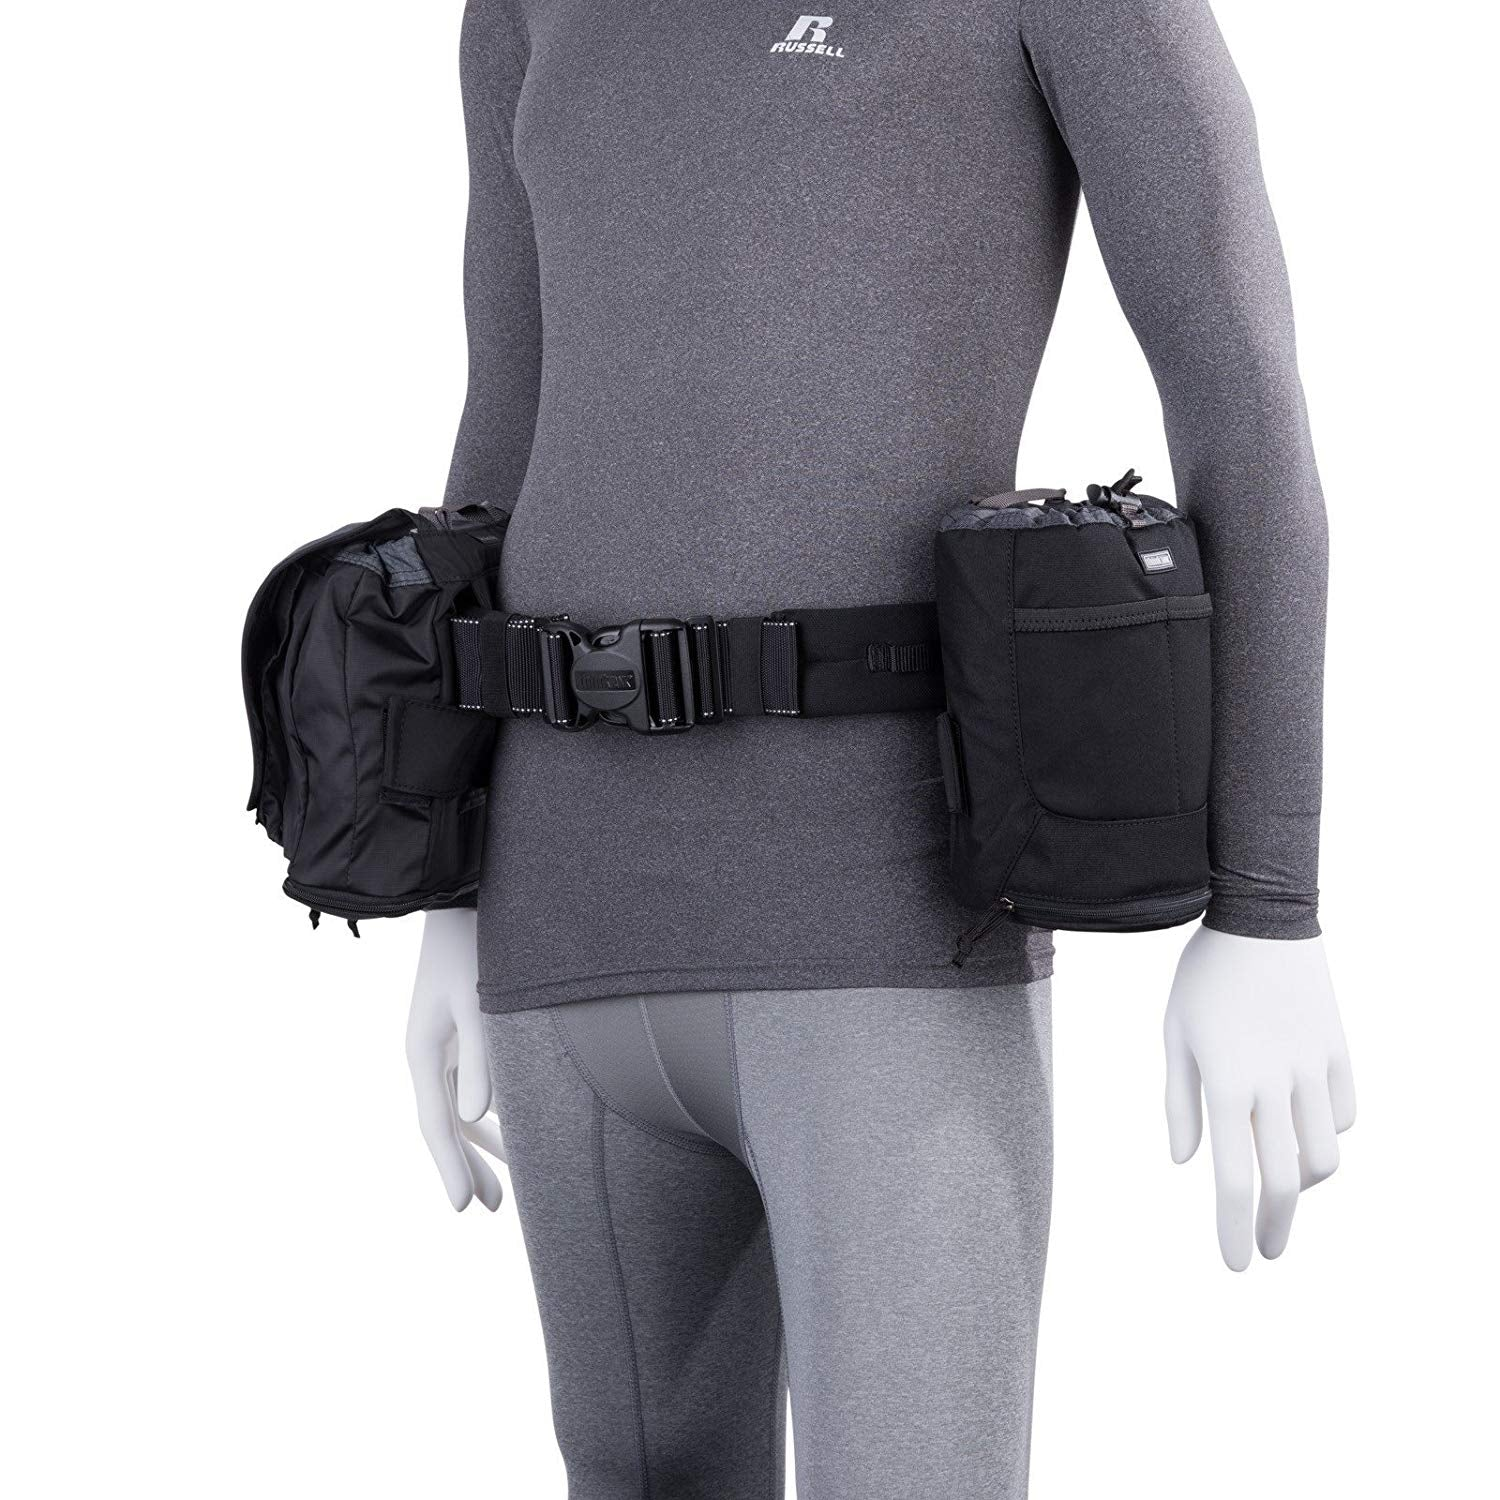 Think Tank Pro Speed Belt V2.0 Padded MediumLarge Size Modulus Accessory Belt  Black